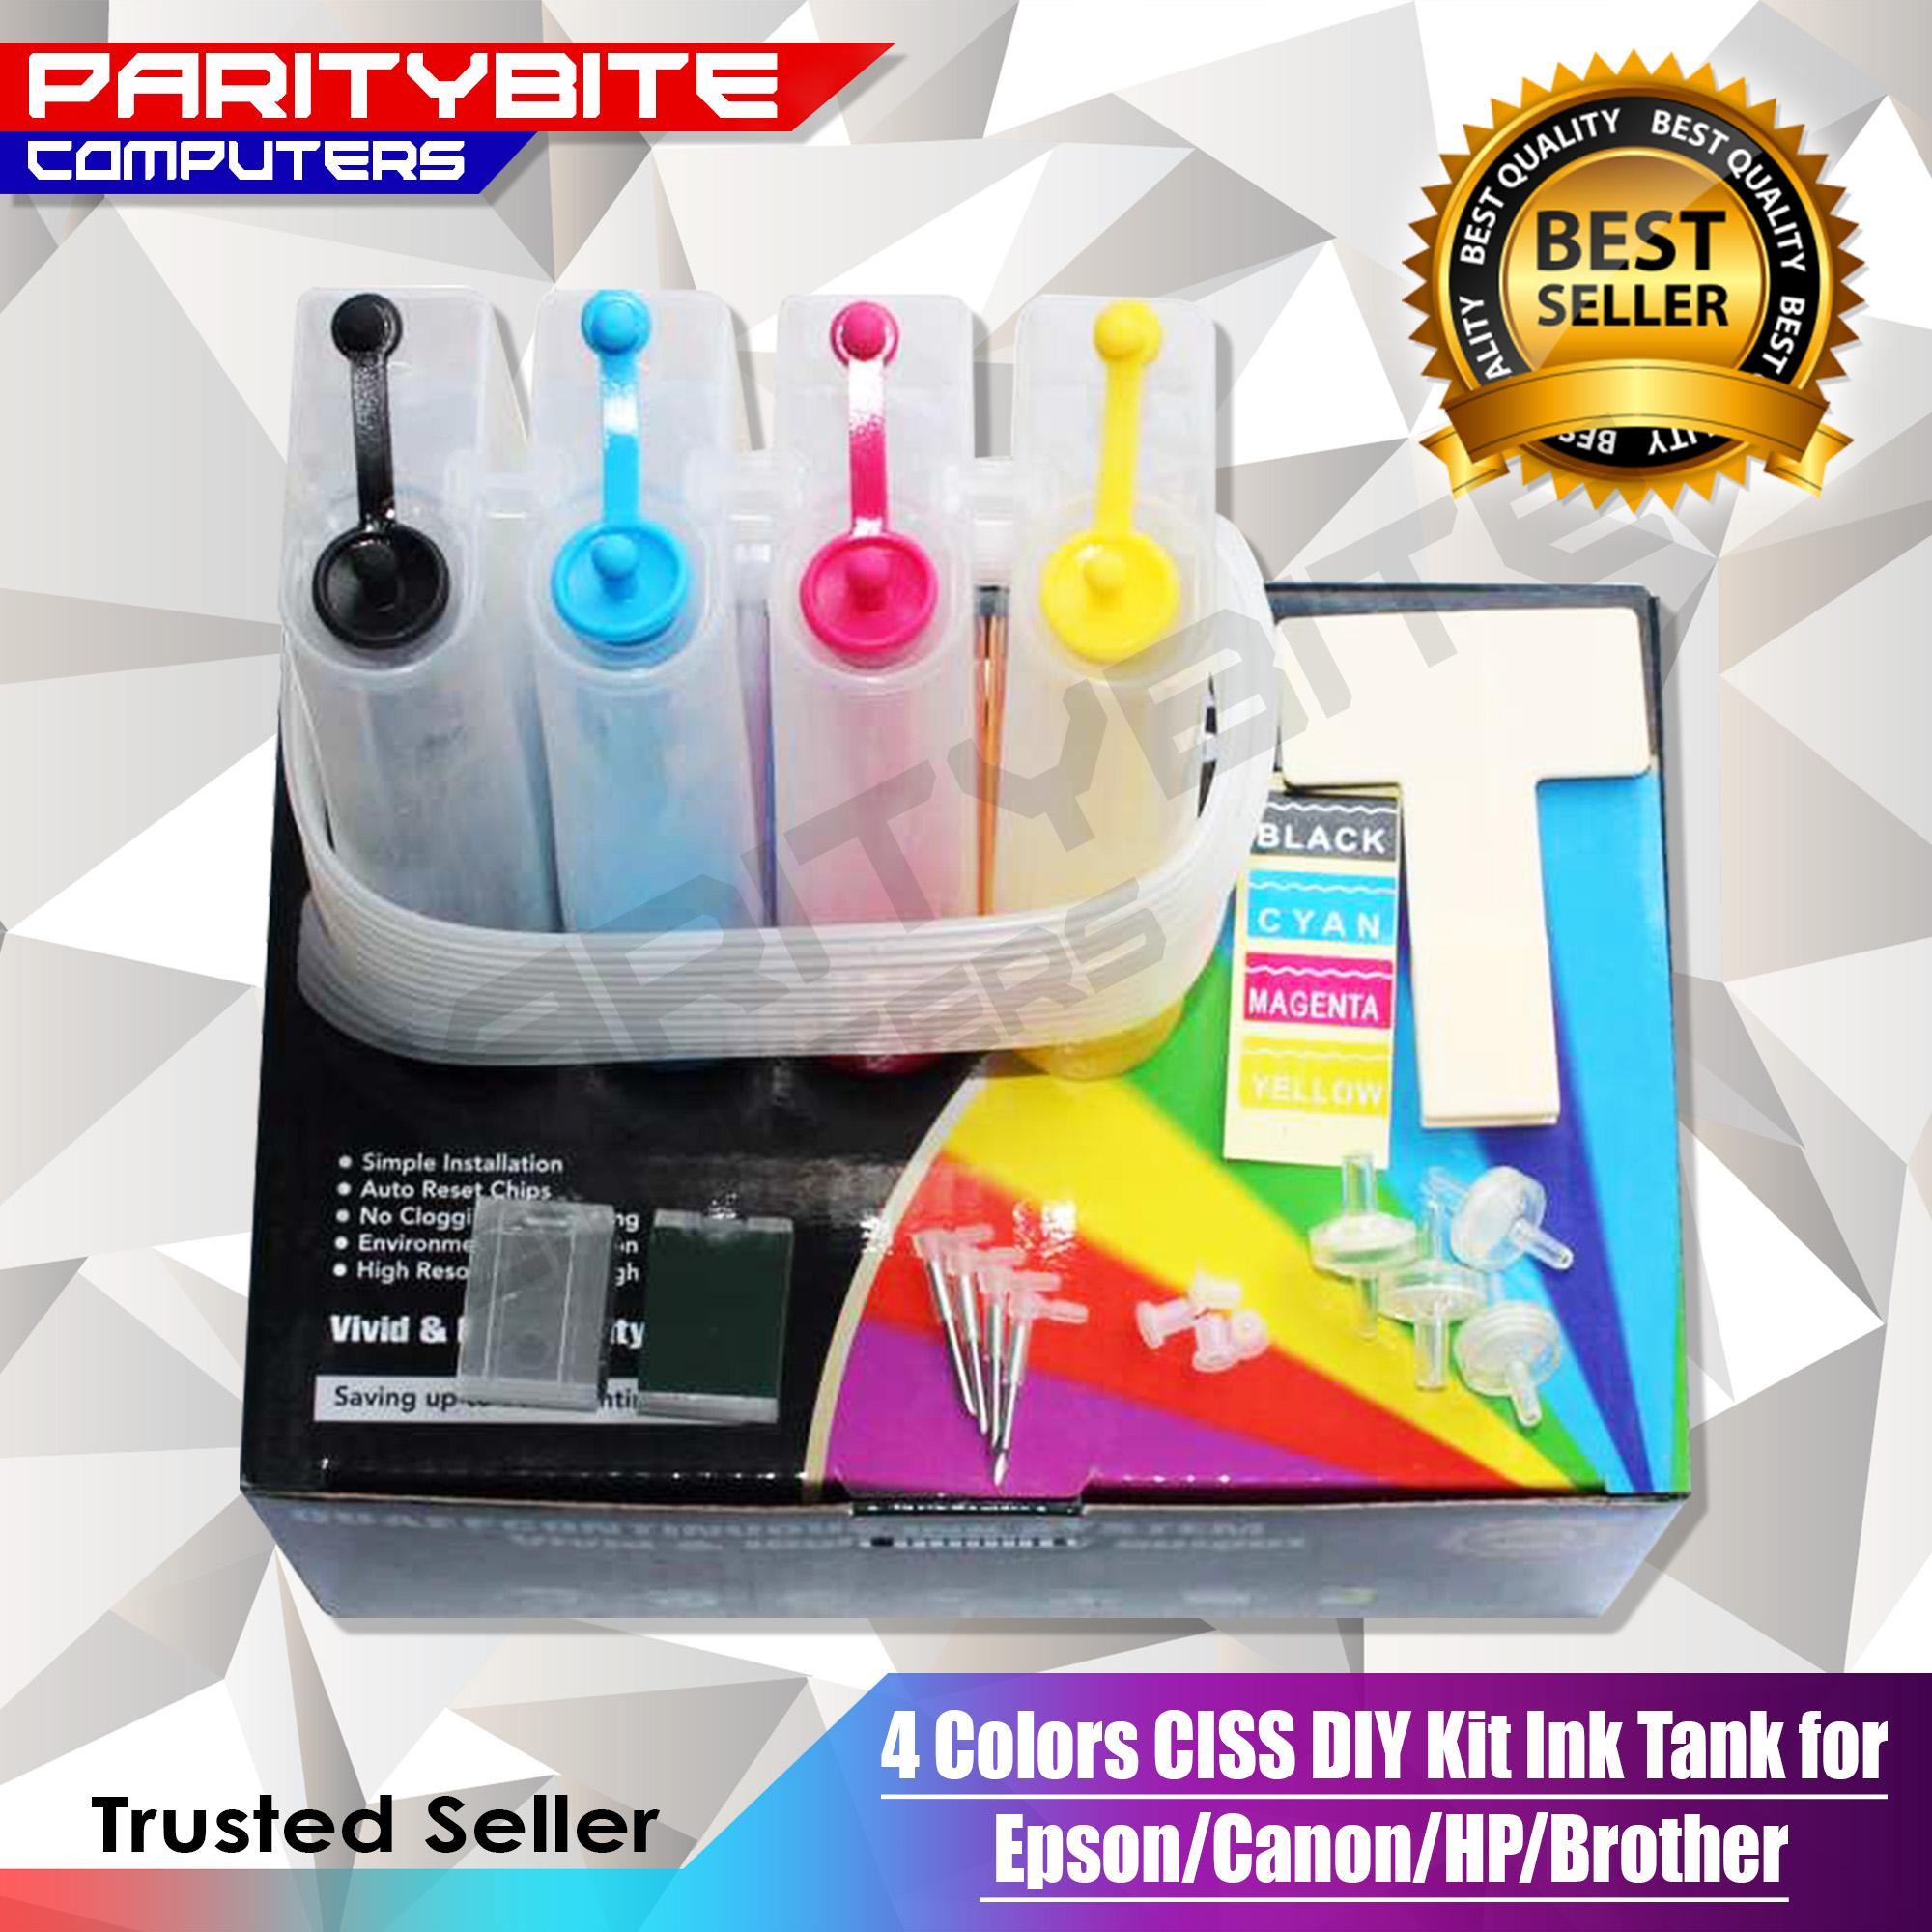 4 Colors Ciss Diy Kit Ink Tank For Epson/canon/hp/brother By Paritybite Computers.